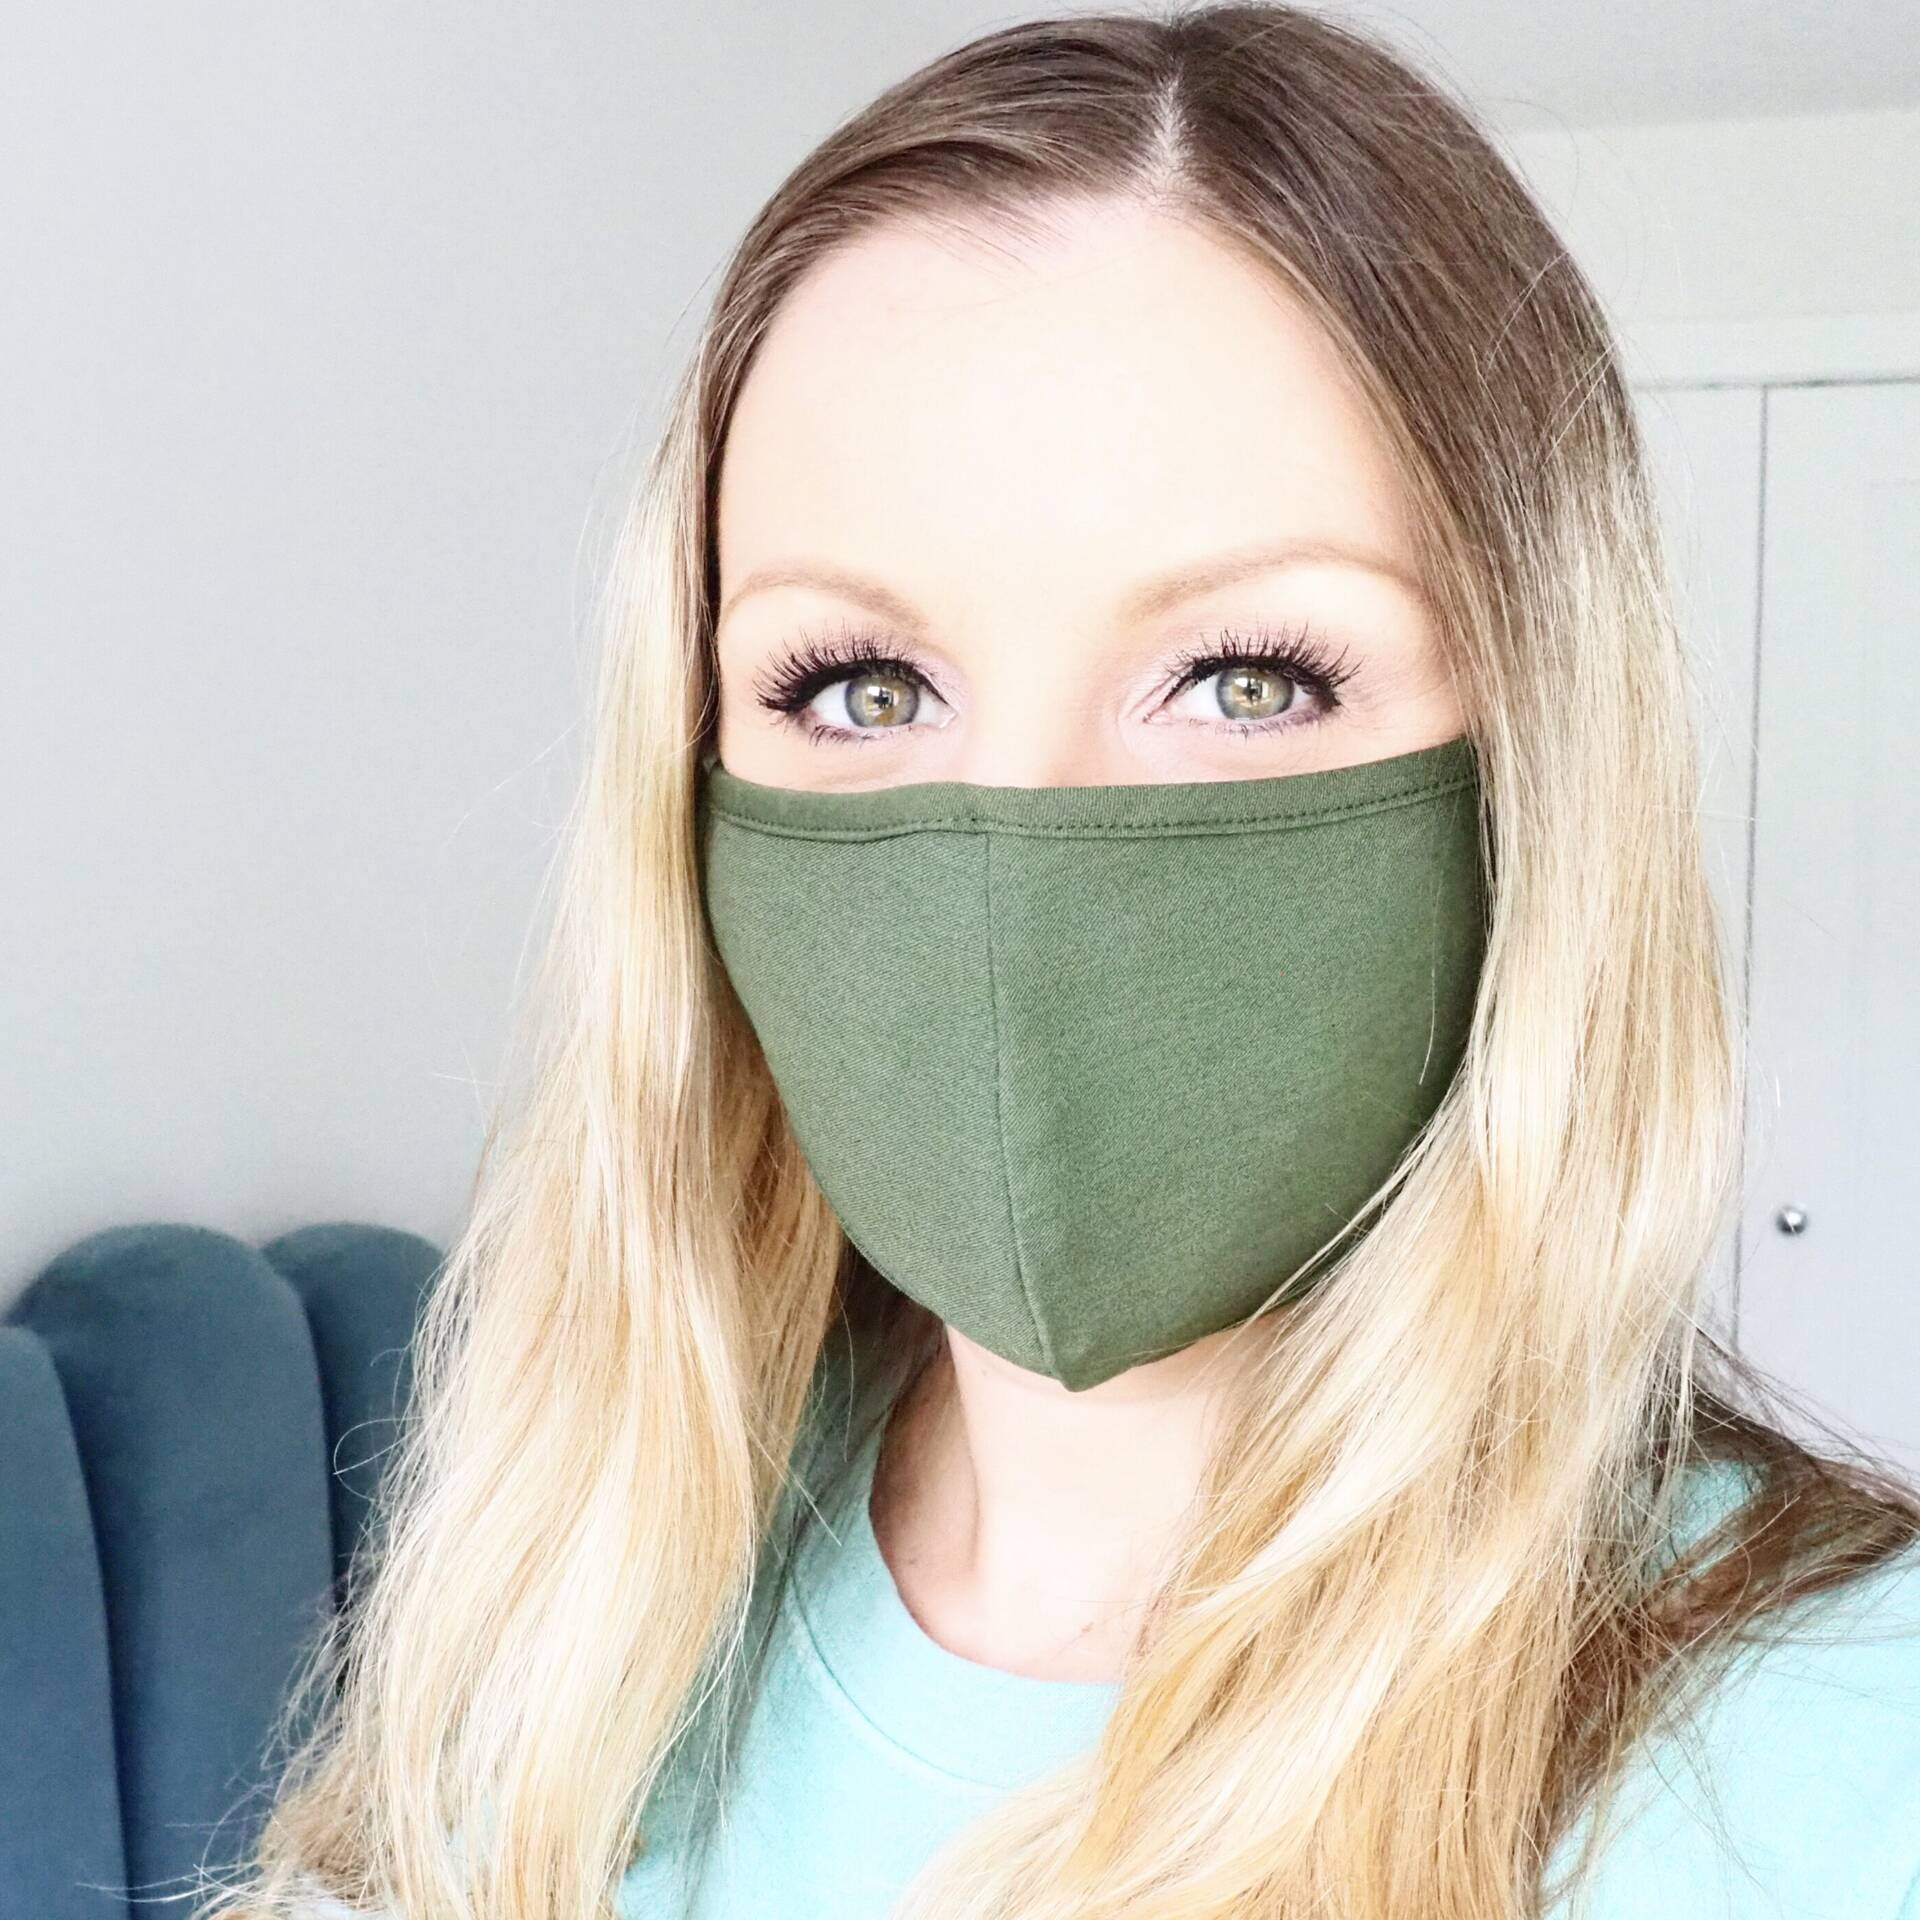 Fashion Face Masks and Face Coverings - Our New Normal